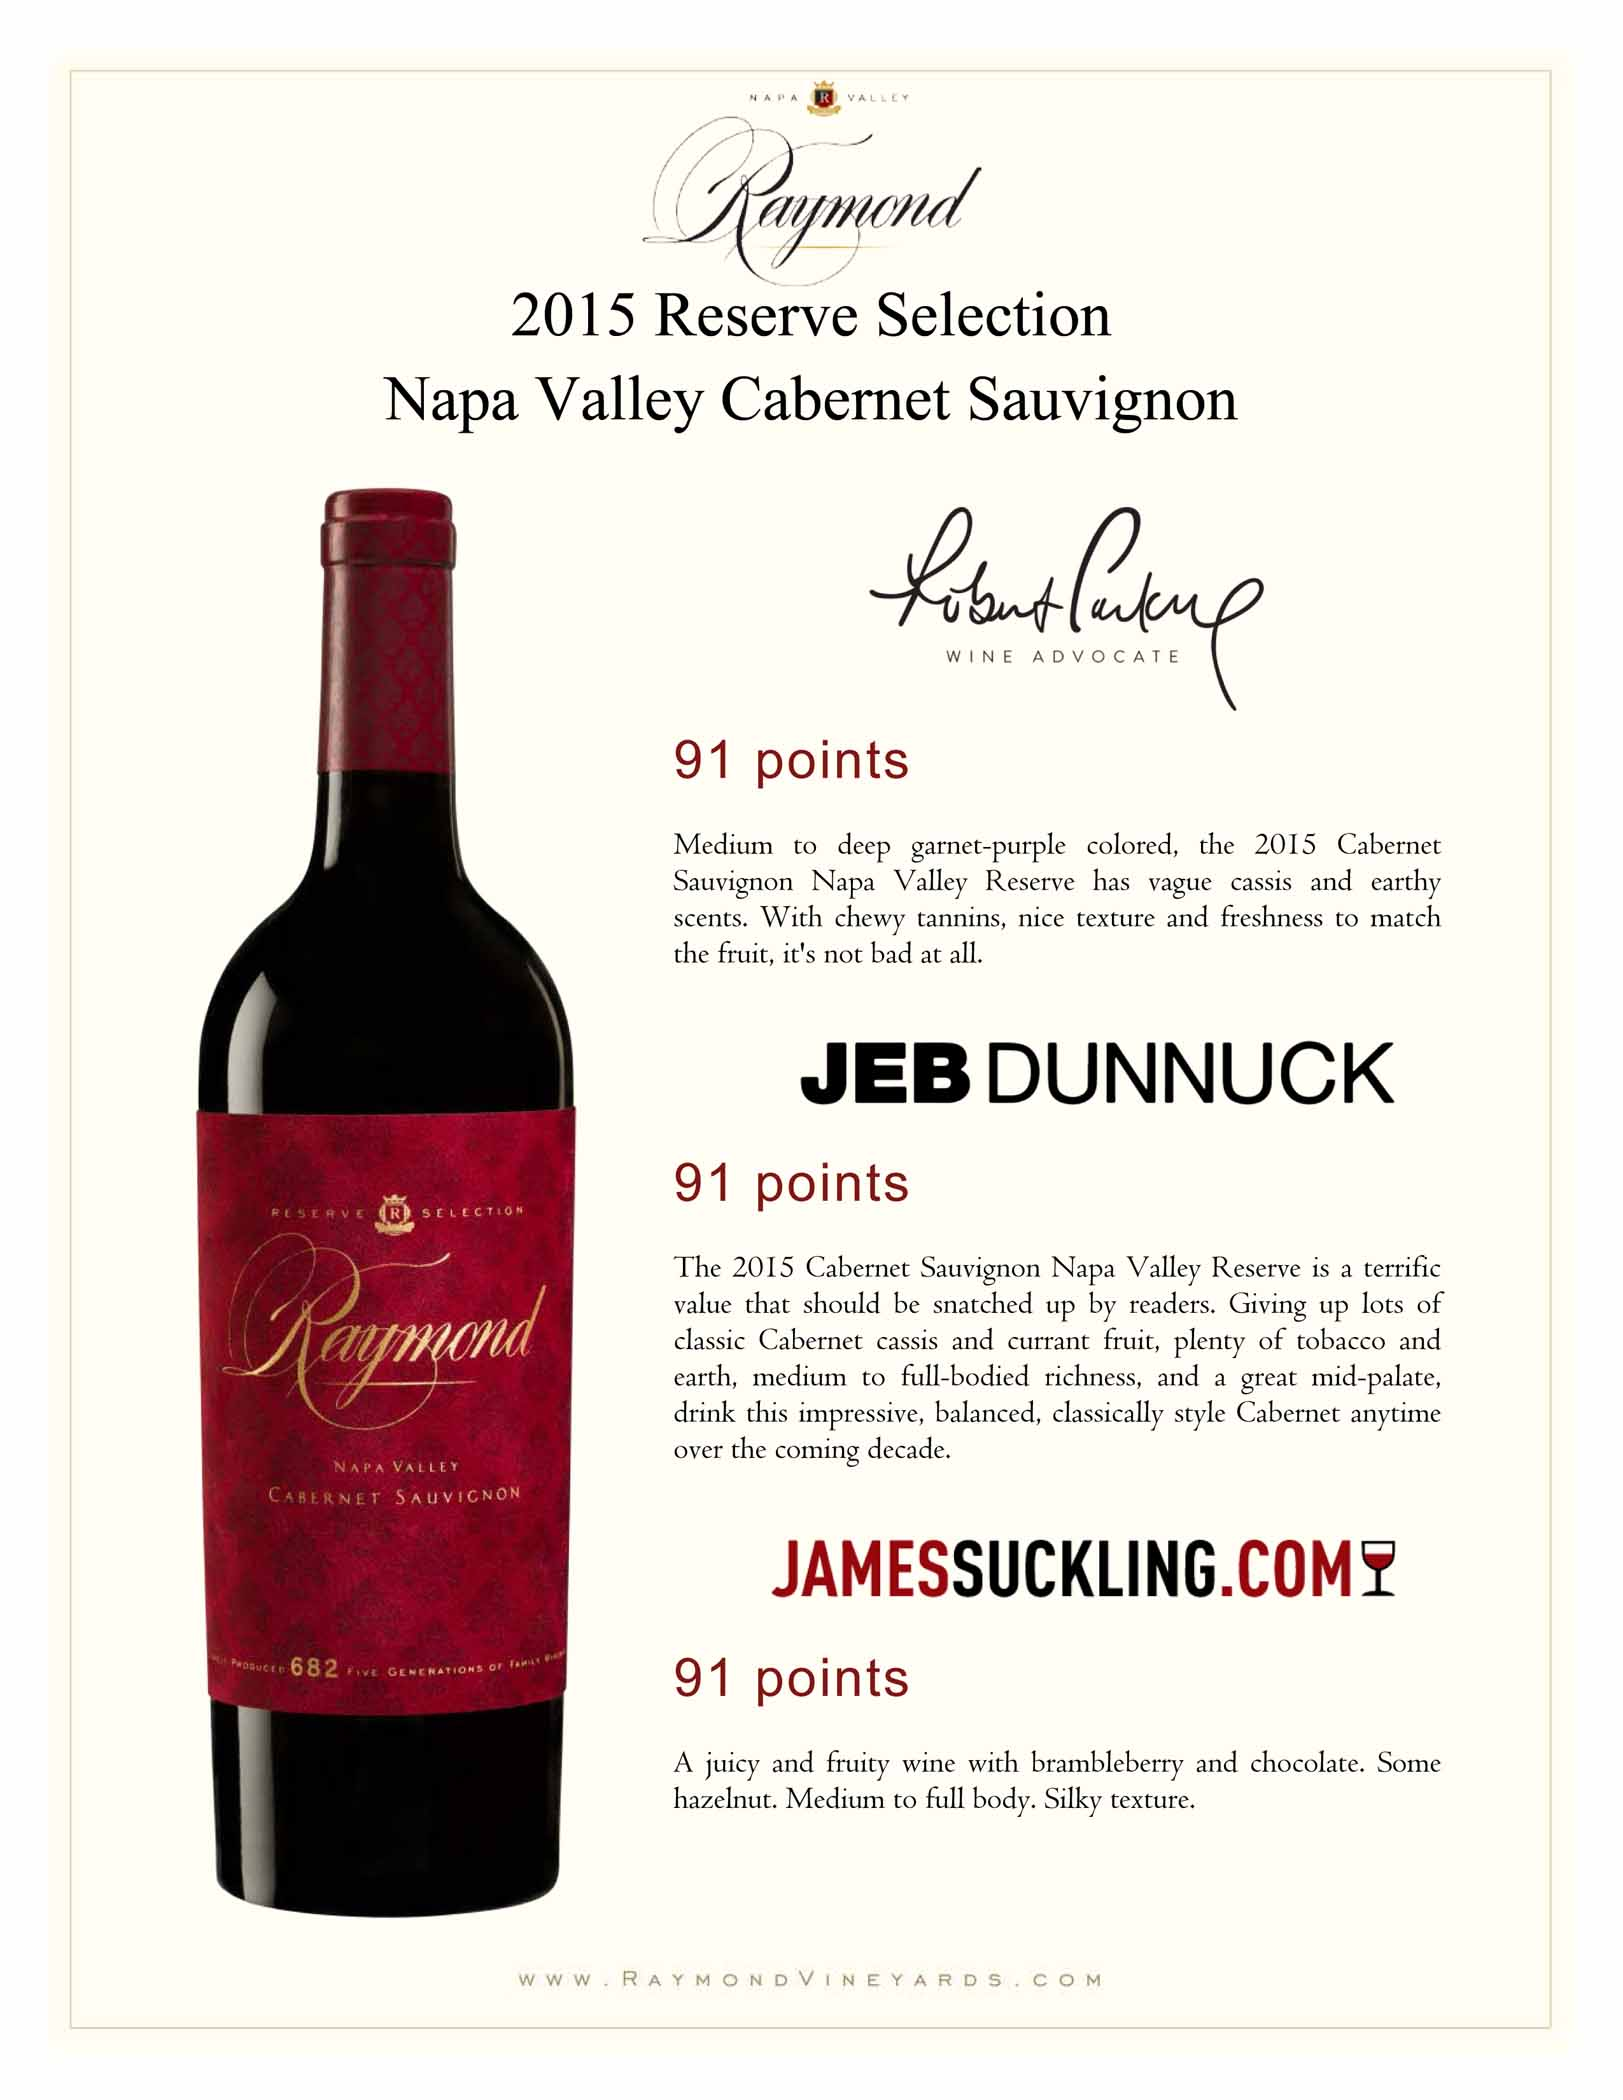 Raymond Cabernet Reserve 2015 Earns 91 Point Rating